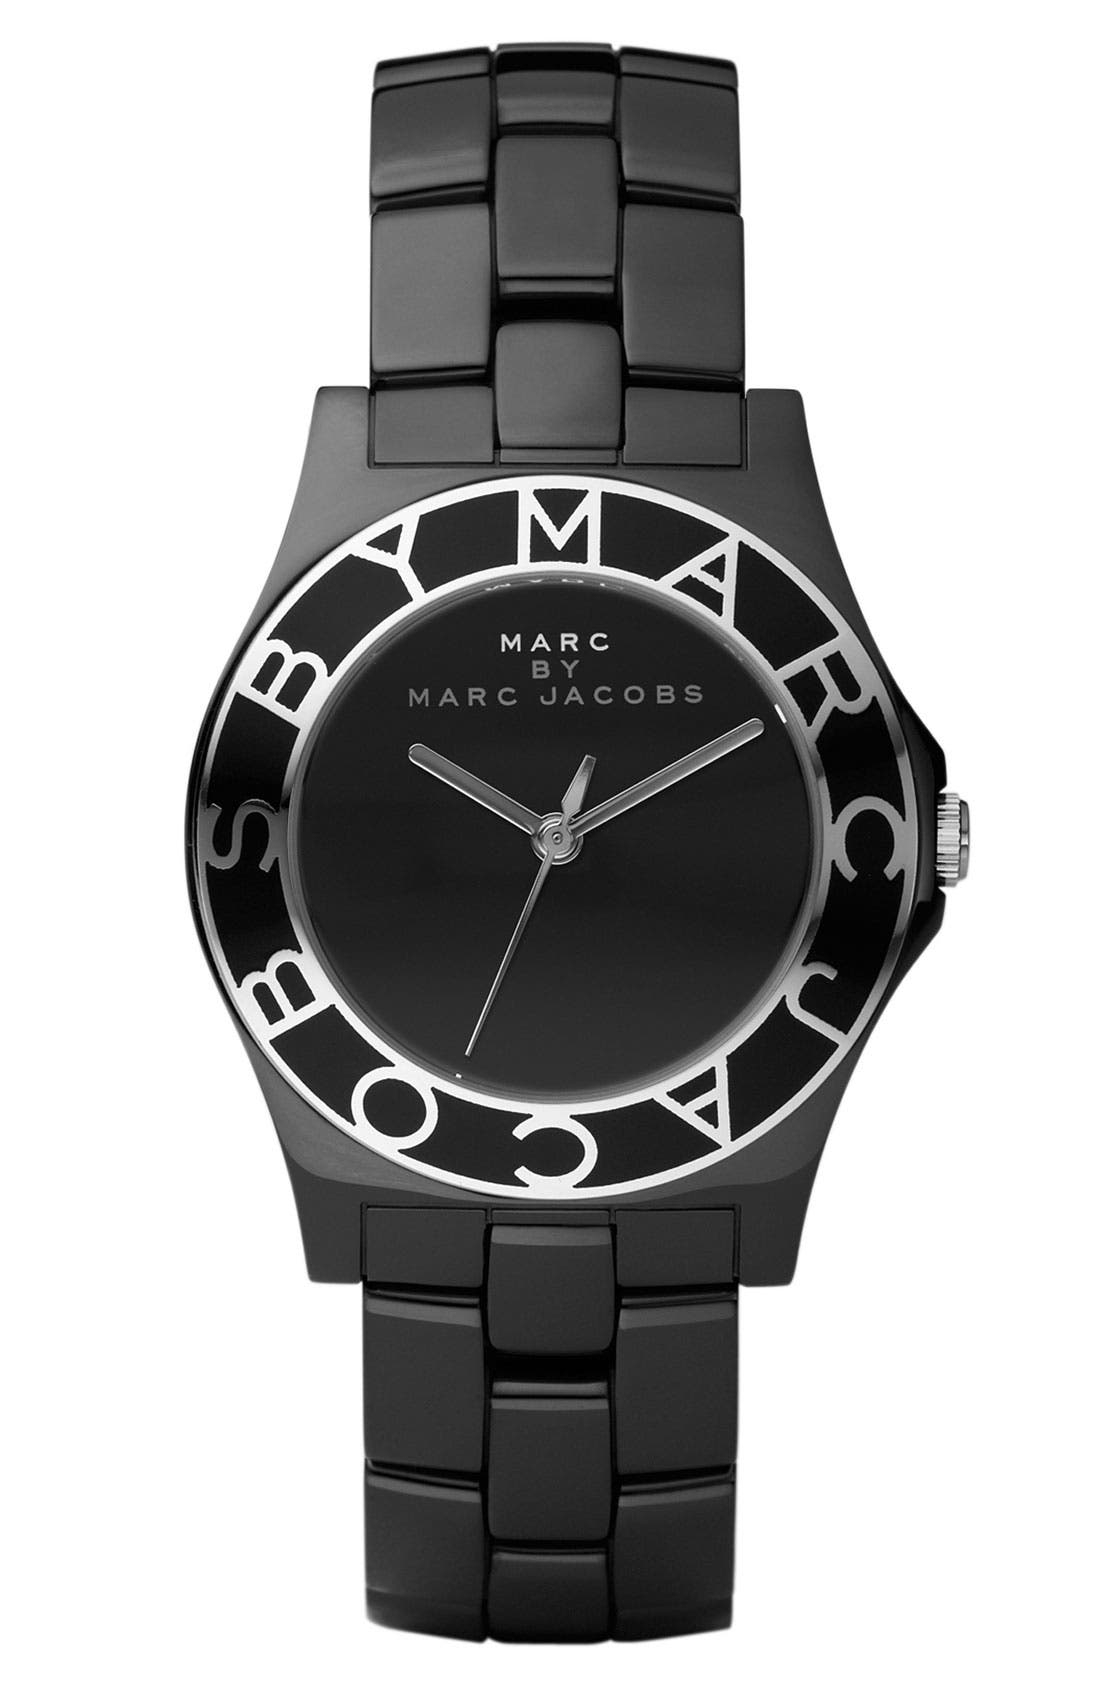 MARC BY MARC JACOBS, 'Ceramic Blade' Watch, Main thumbnail 1, color, 001